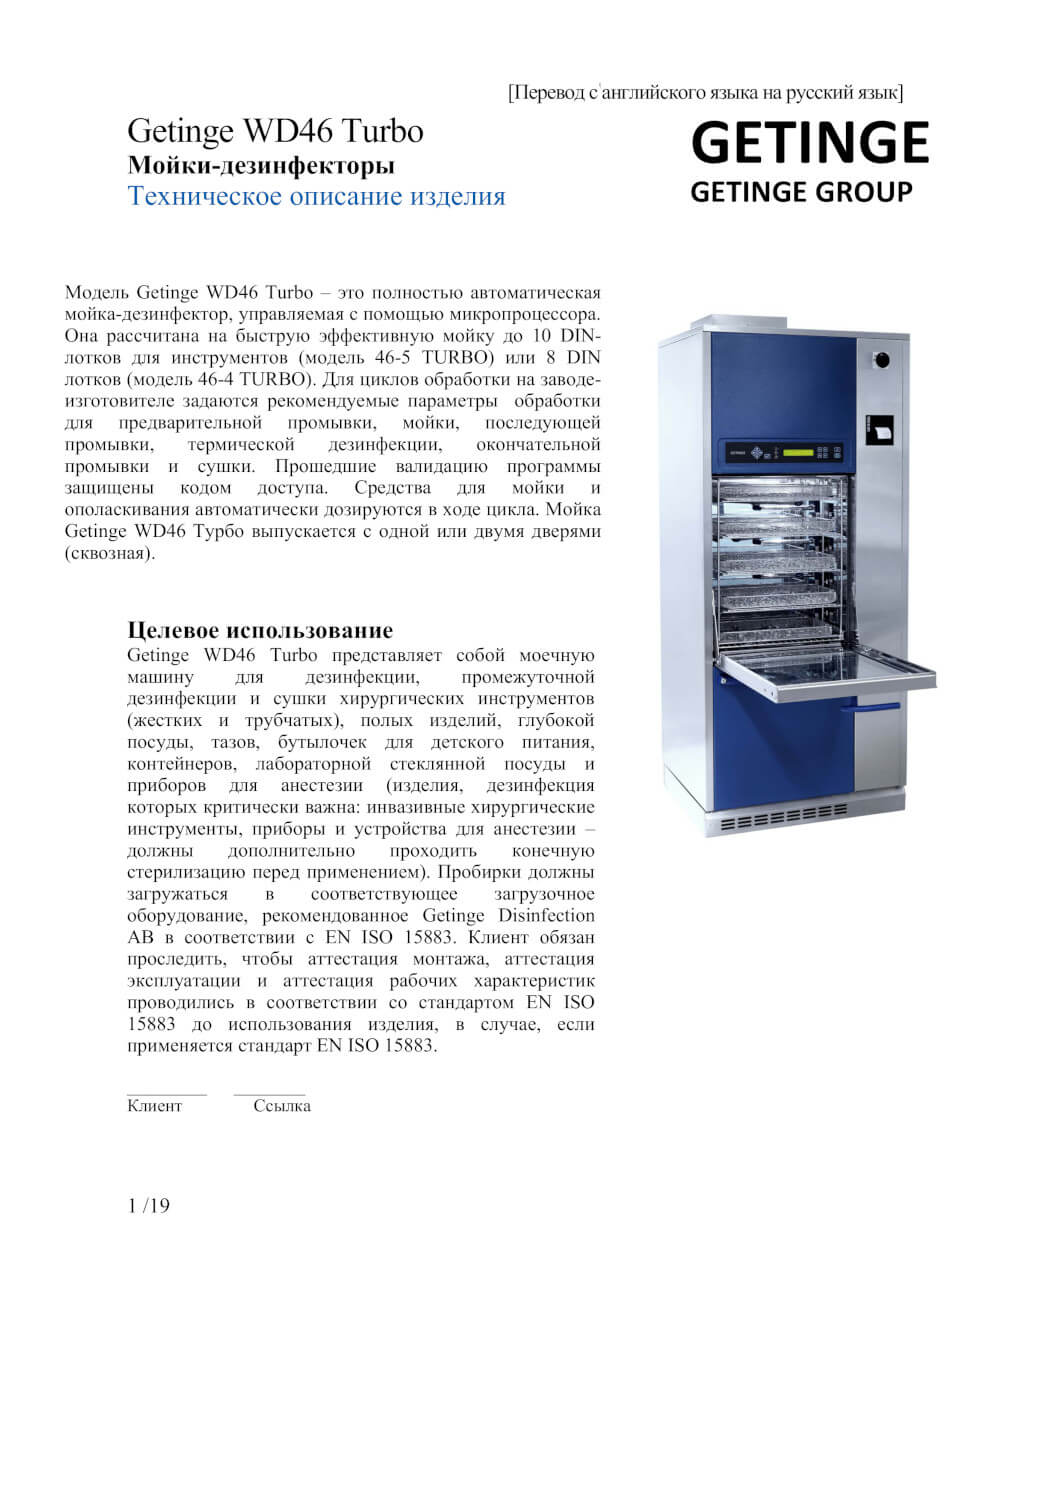 English product catalogue after being translated into russian (with basic formatting)